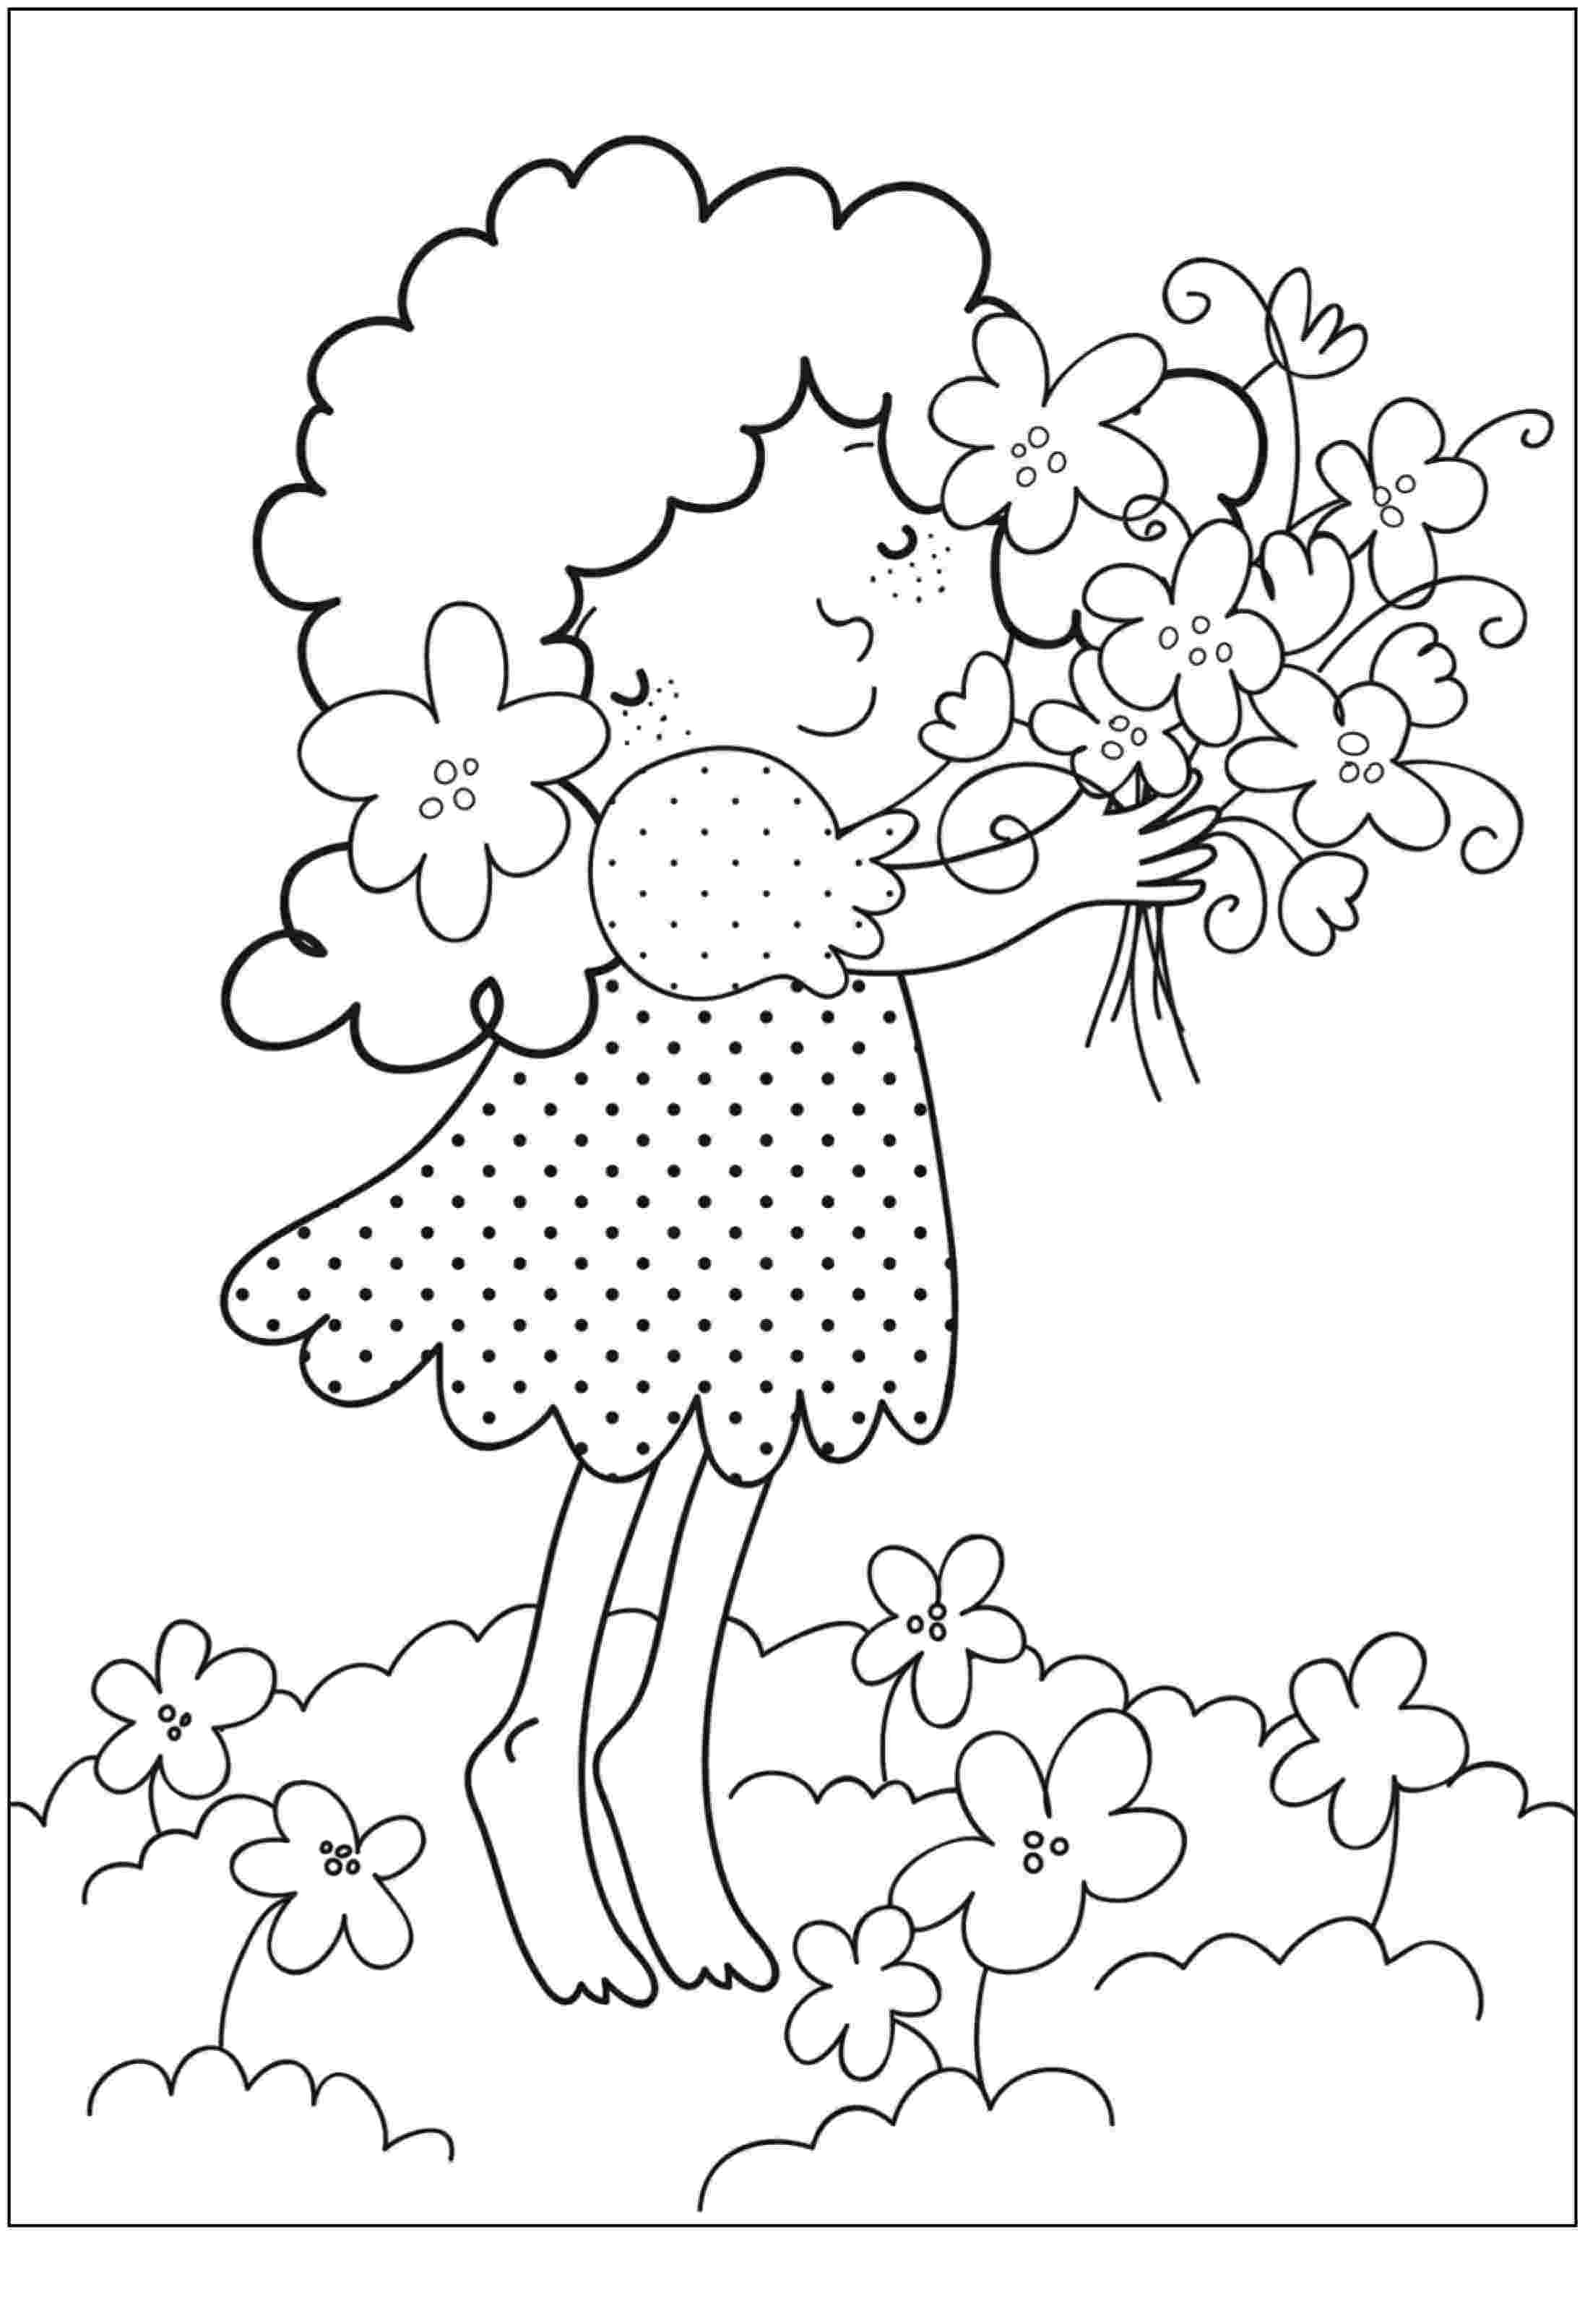 printable colouring flower pages free printable flower coloring pages for kids best pages colouring printable flower